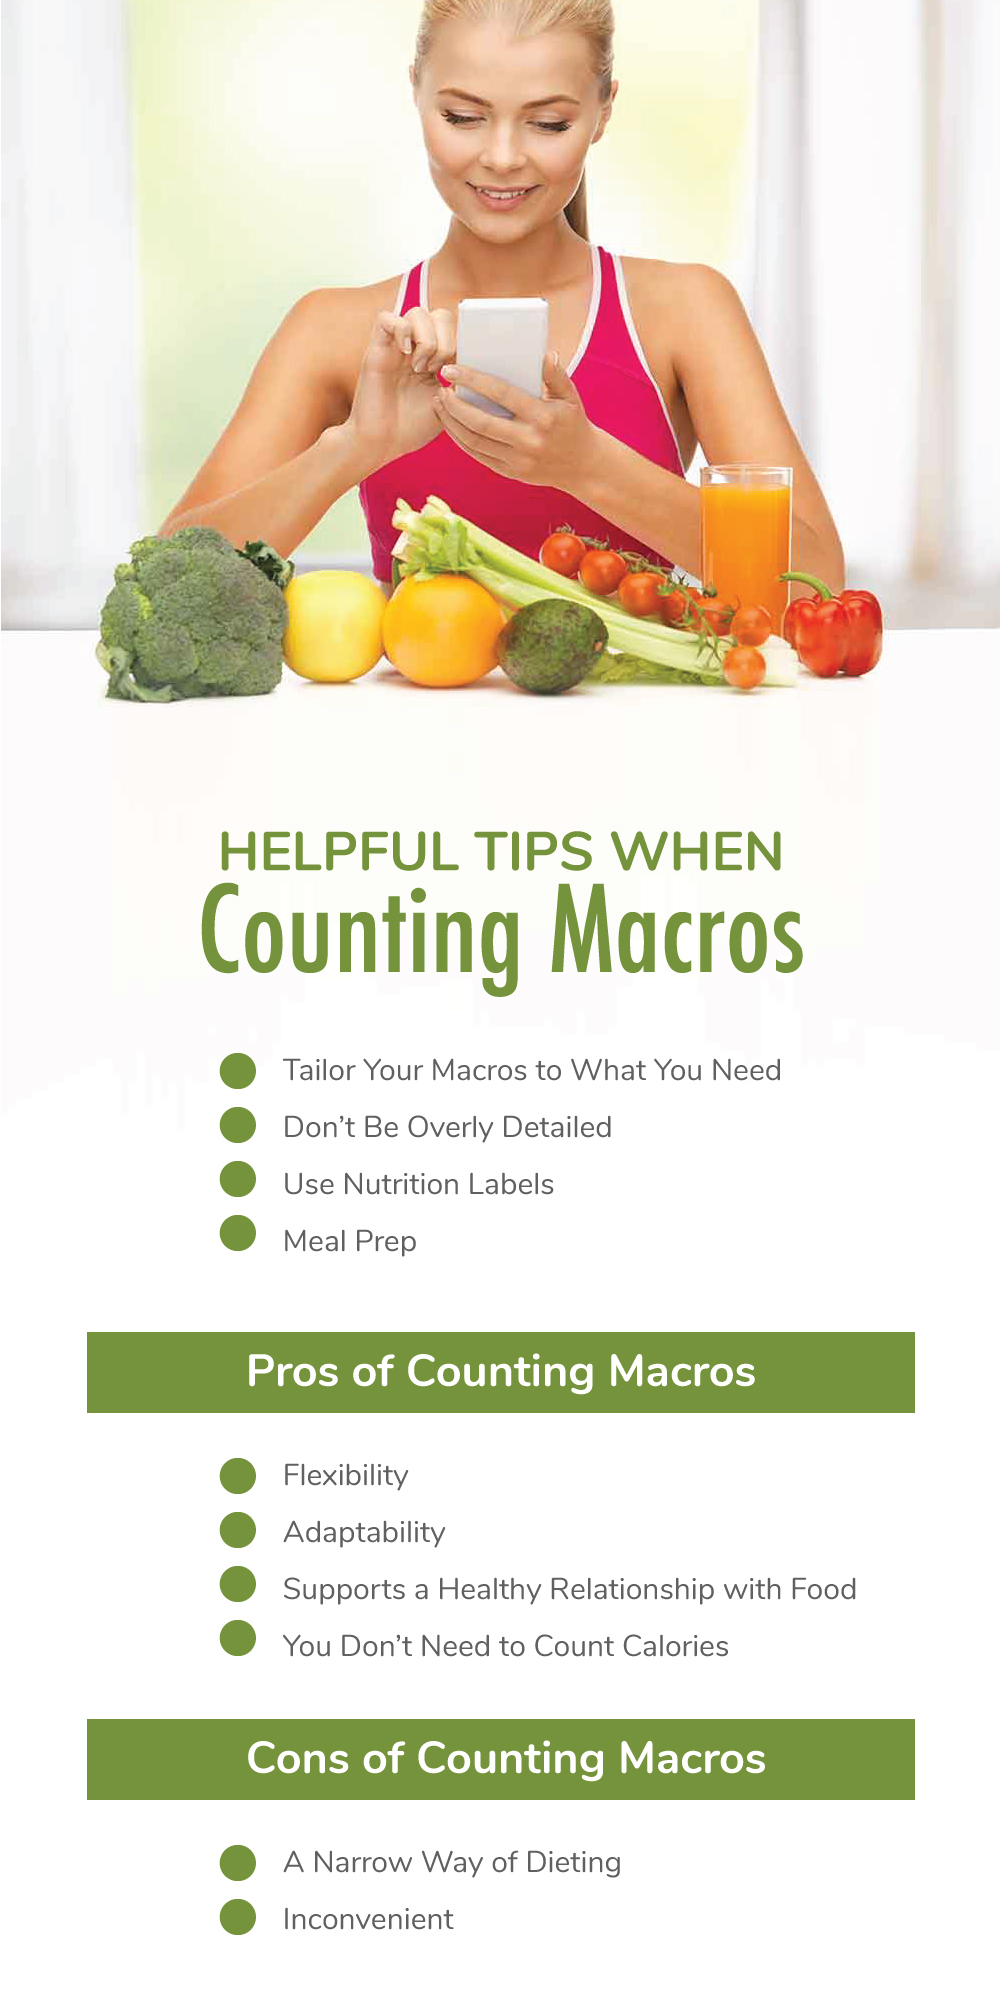 Helpful Tips When Counting Macros